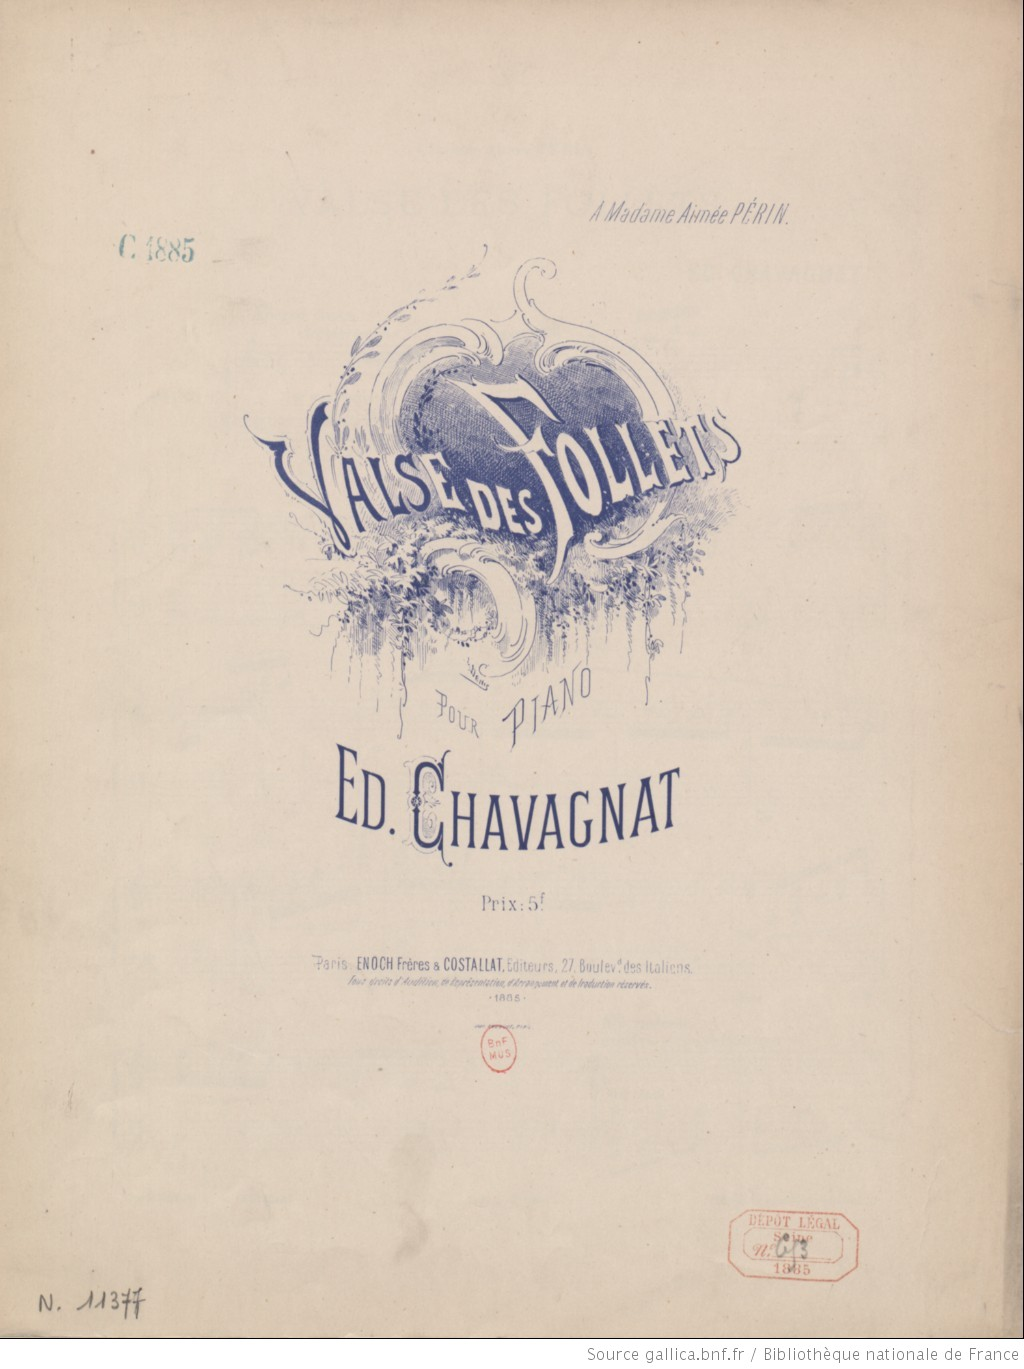 Valse des follets : pour piano / Ed. Chavagnat ; [orn. par] L. Denis